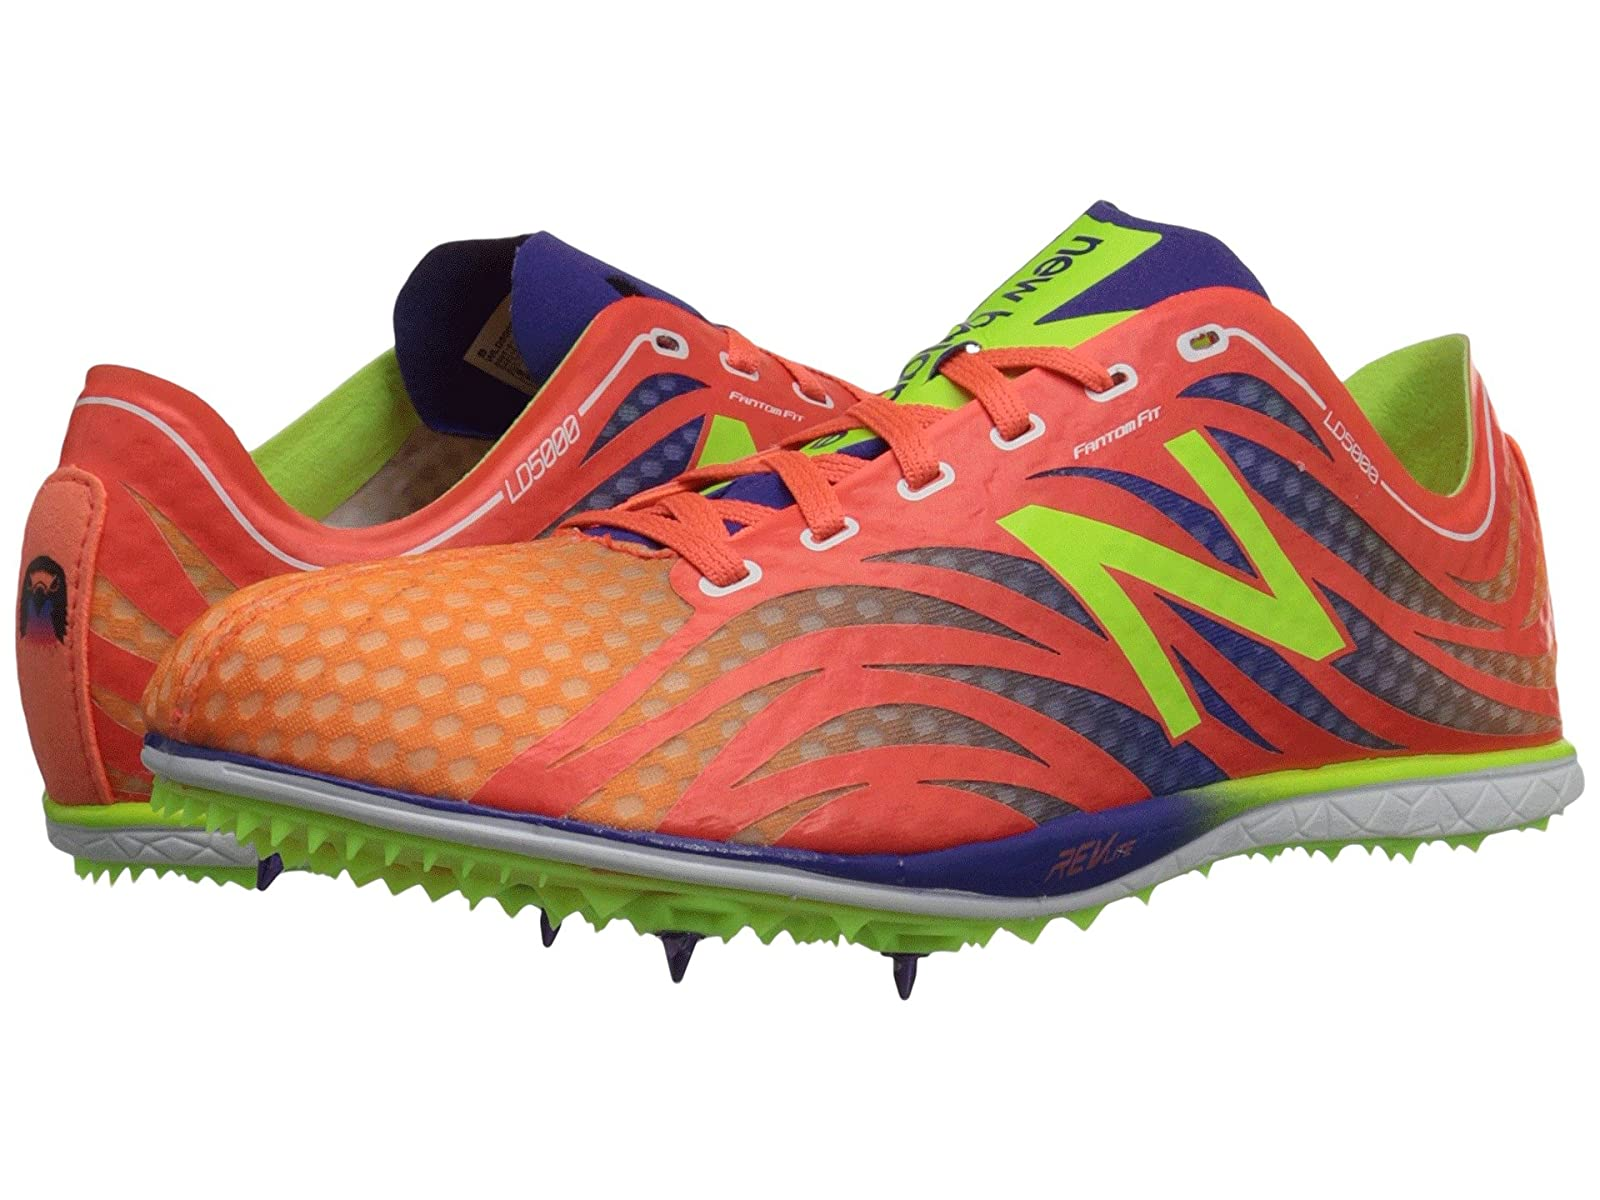 New Balance LD5000v3Cheap and distinctive eye-catching shoes